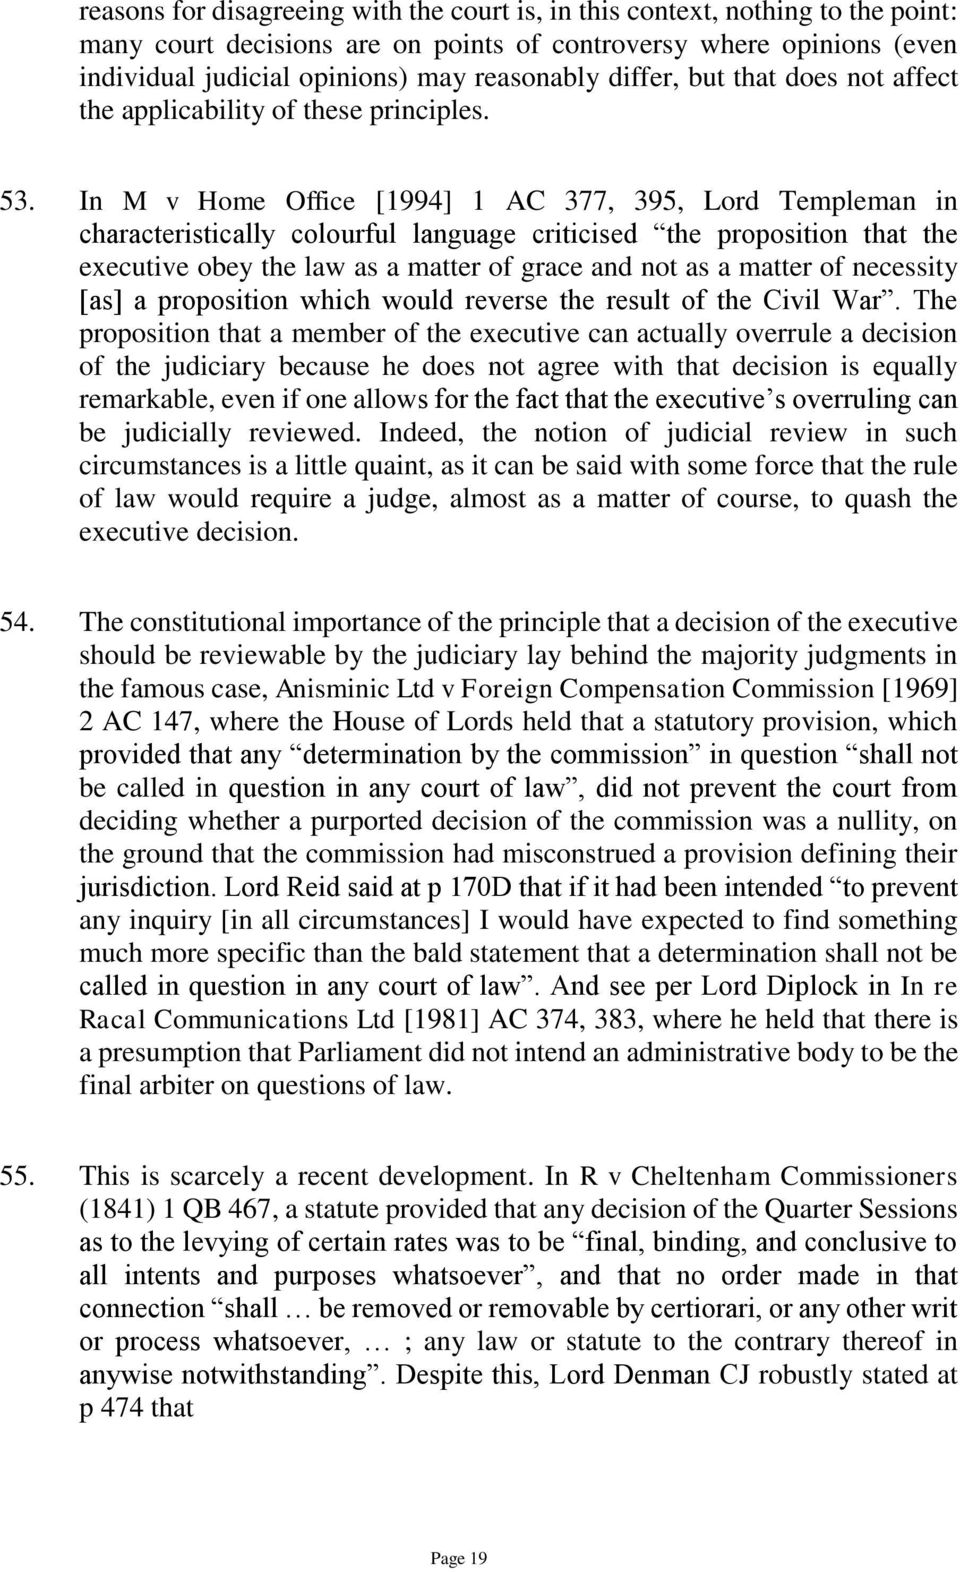 In M v Home Office [1994] 1 AC 377, 395, Lord Templeman in characteristically colourful language criticised the proposition that the executive obey the law as a matter of grace and not as a matter of